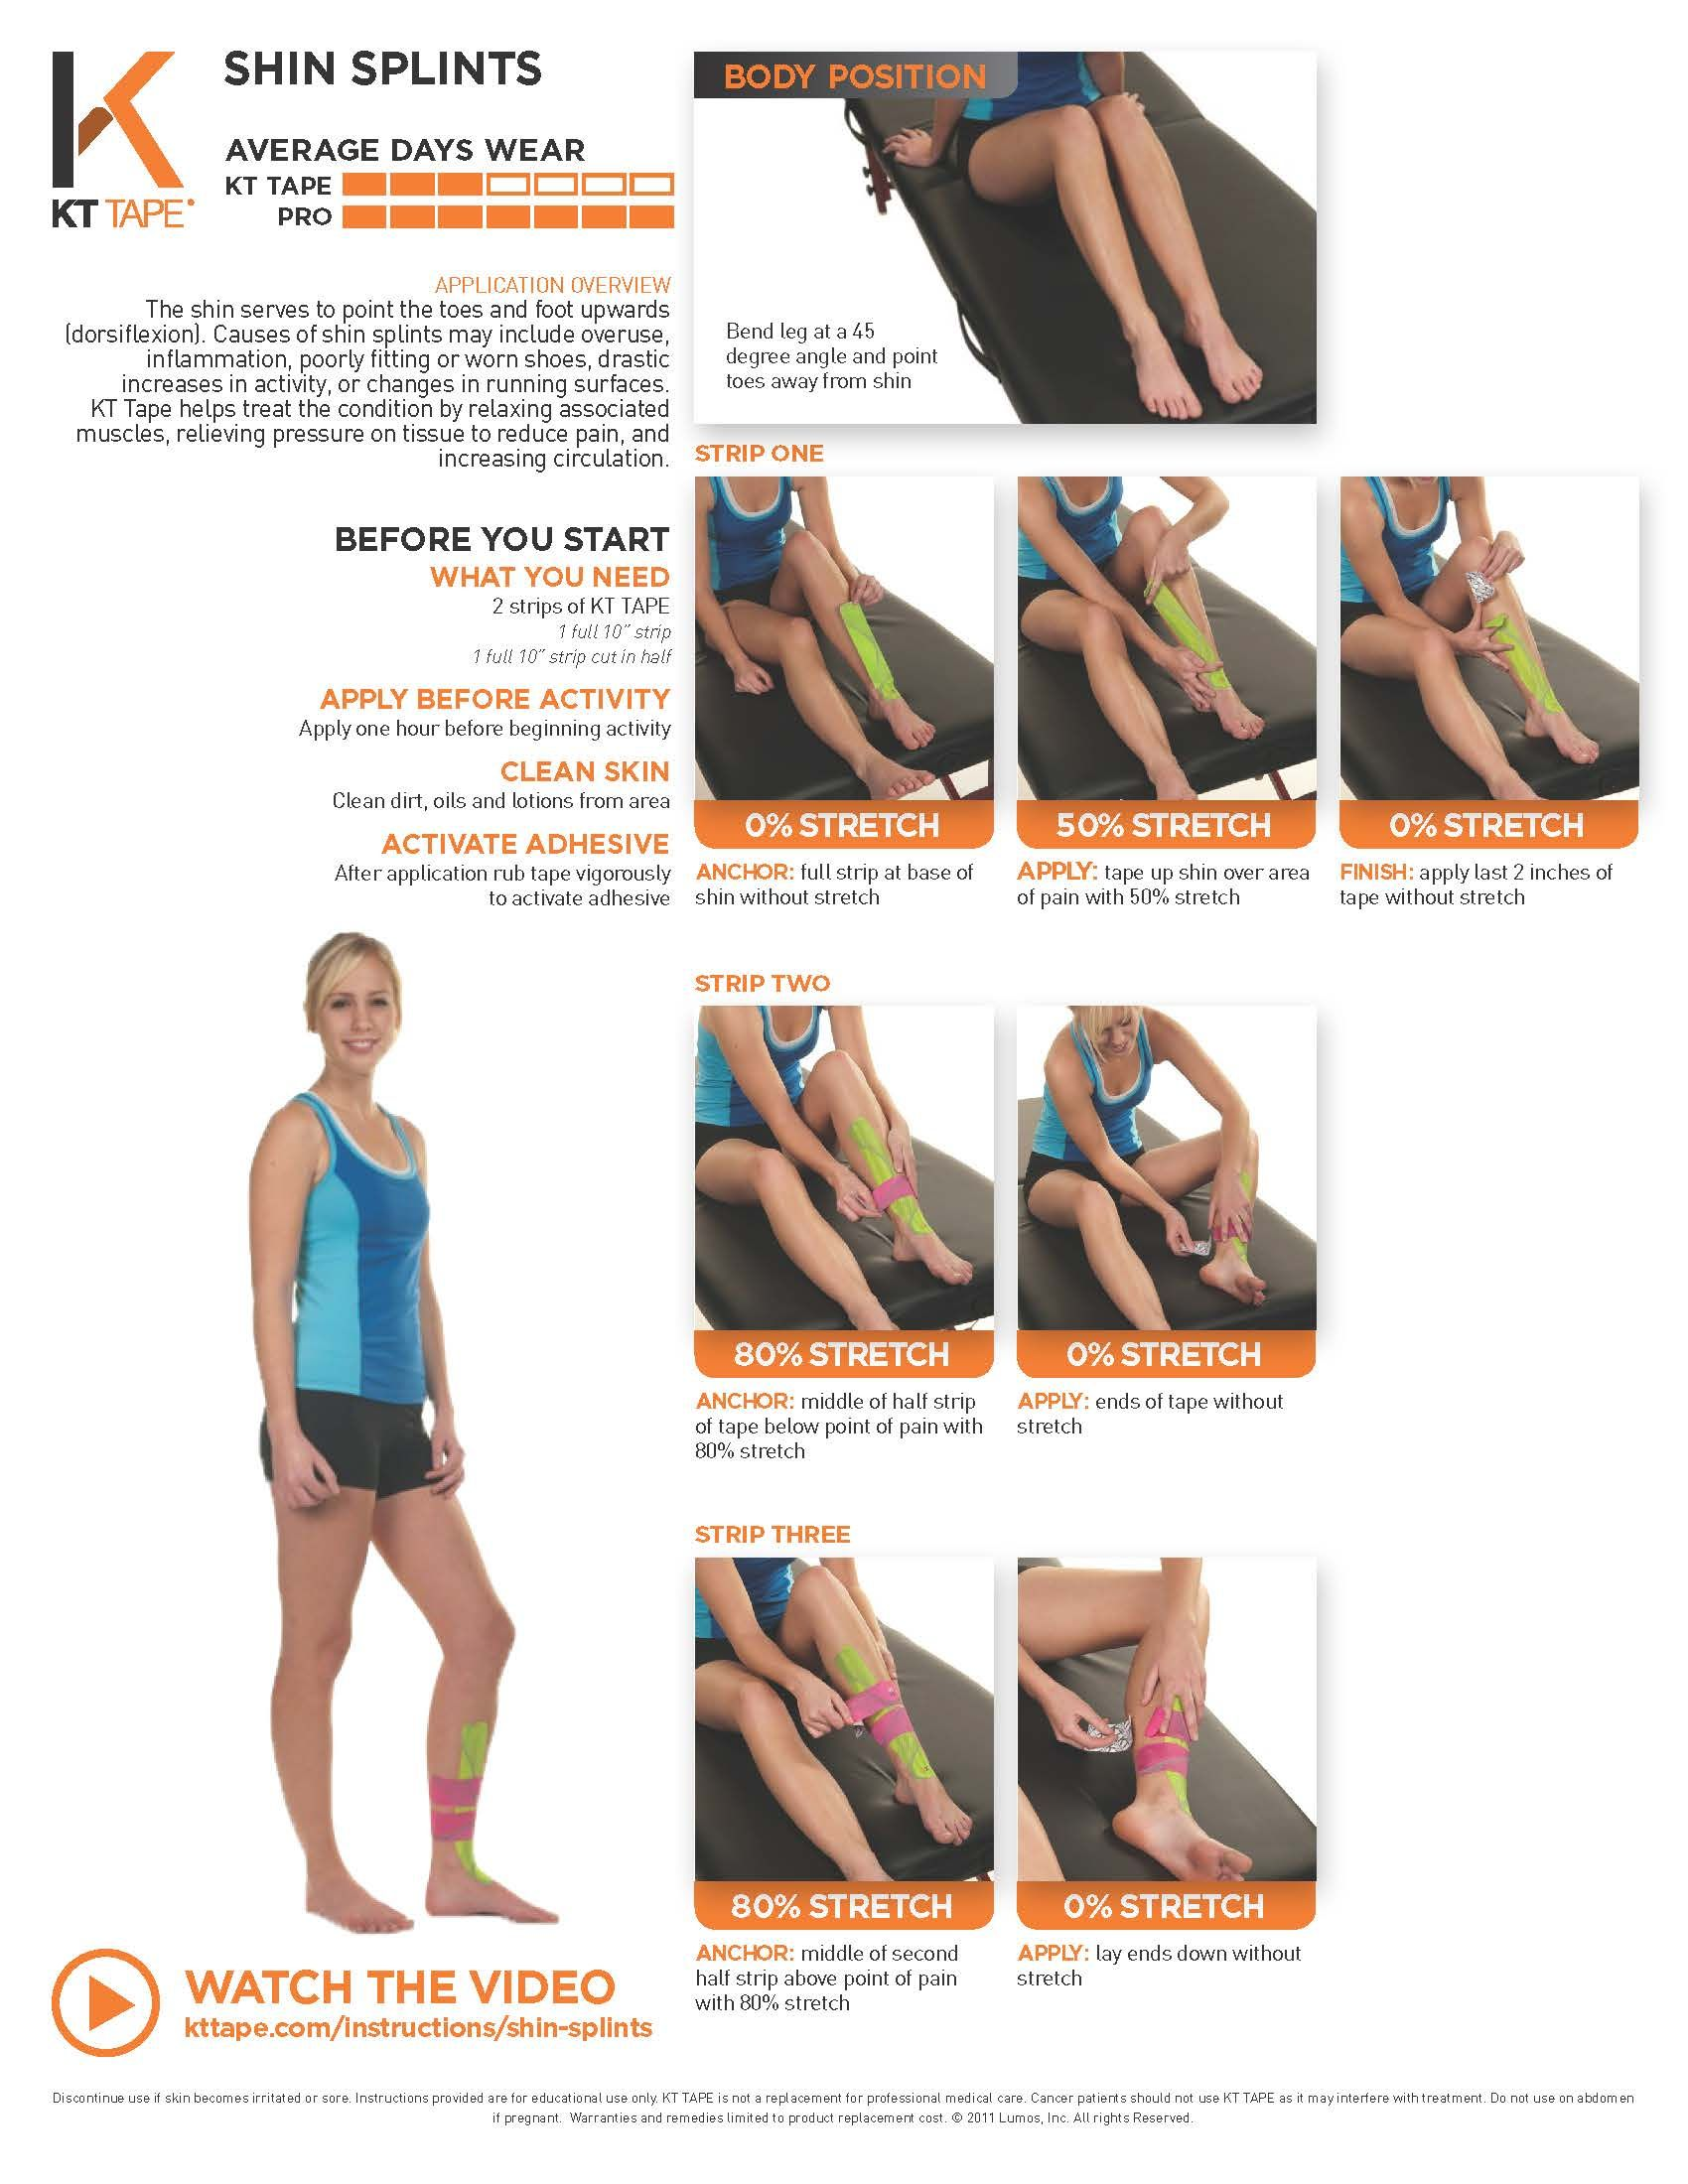 Printable Taping Instructions | fit and healthy | Pinterest | Shin ...